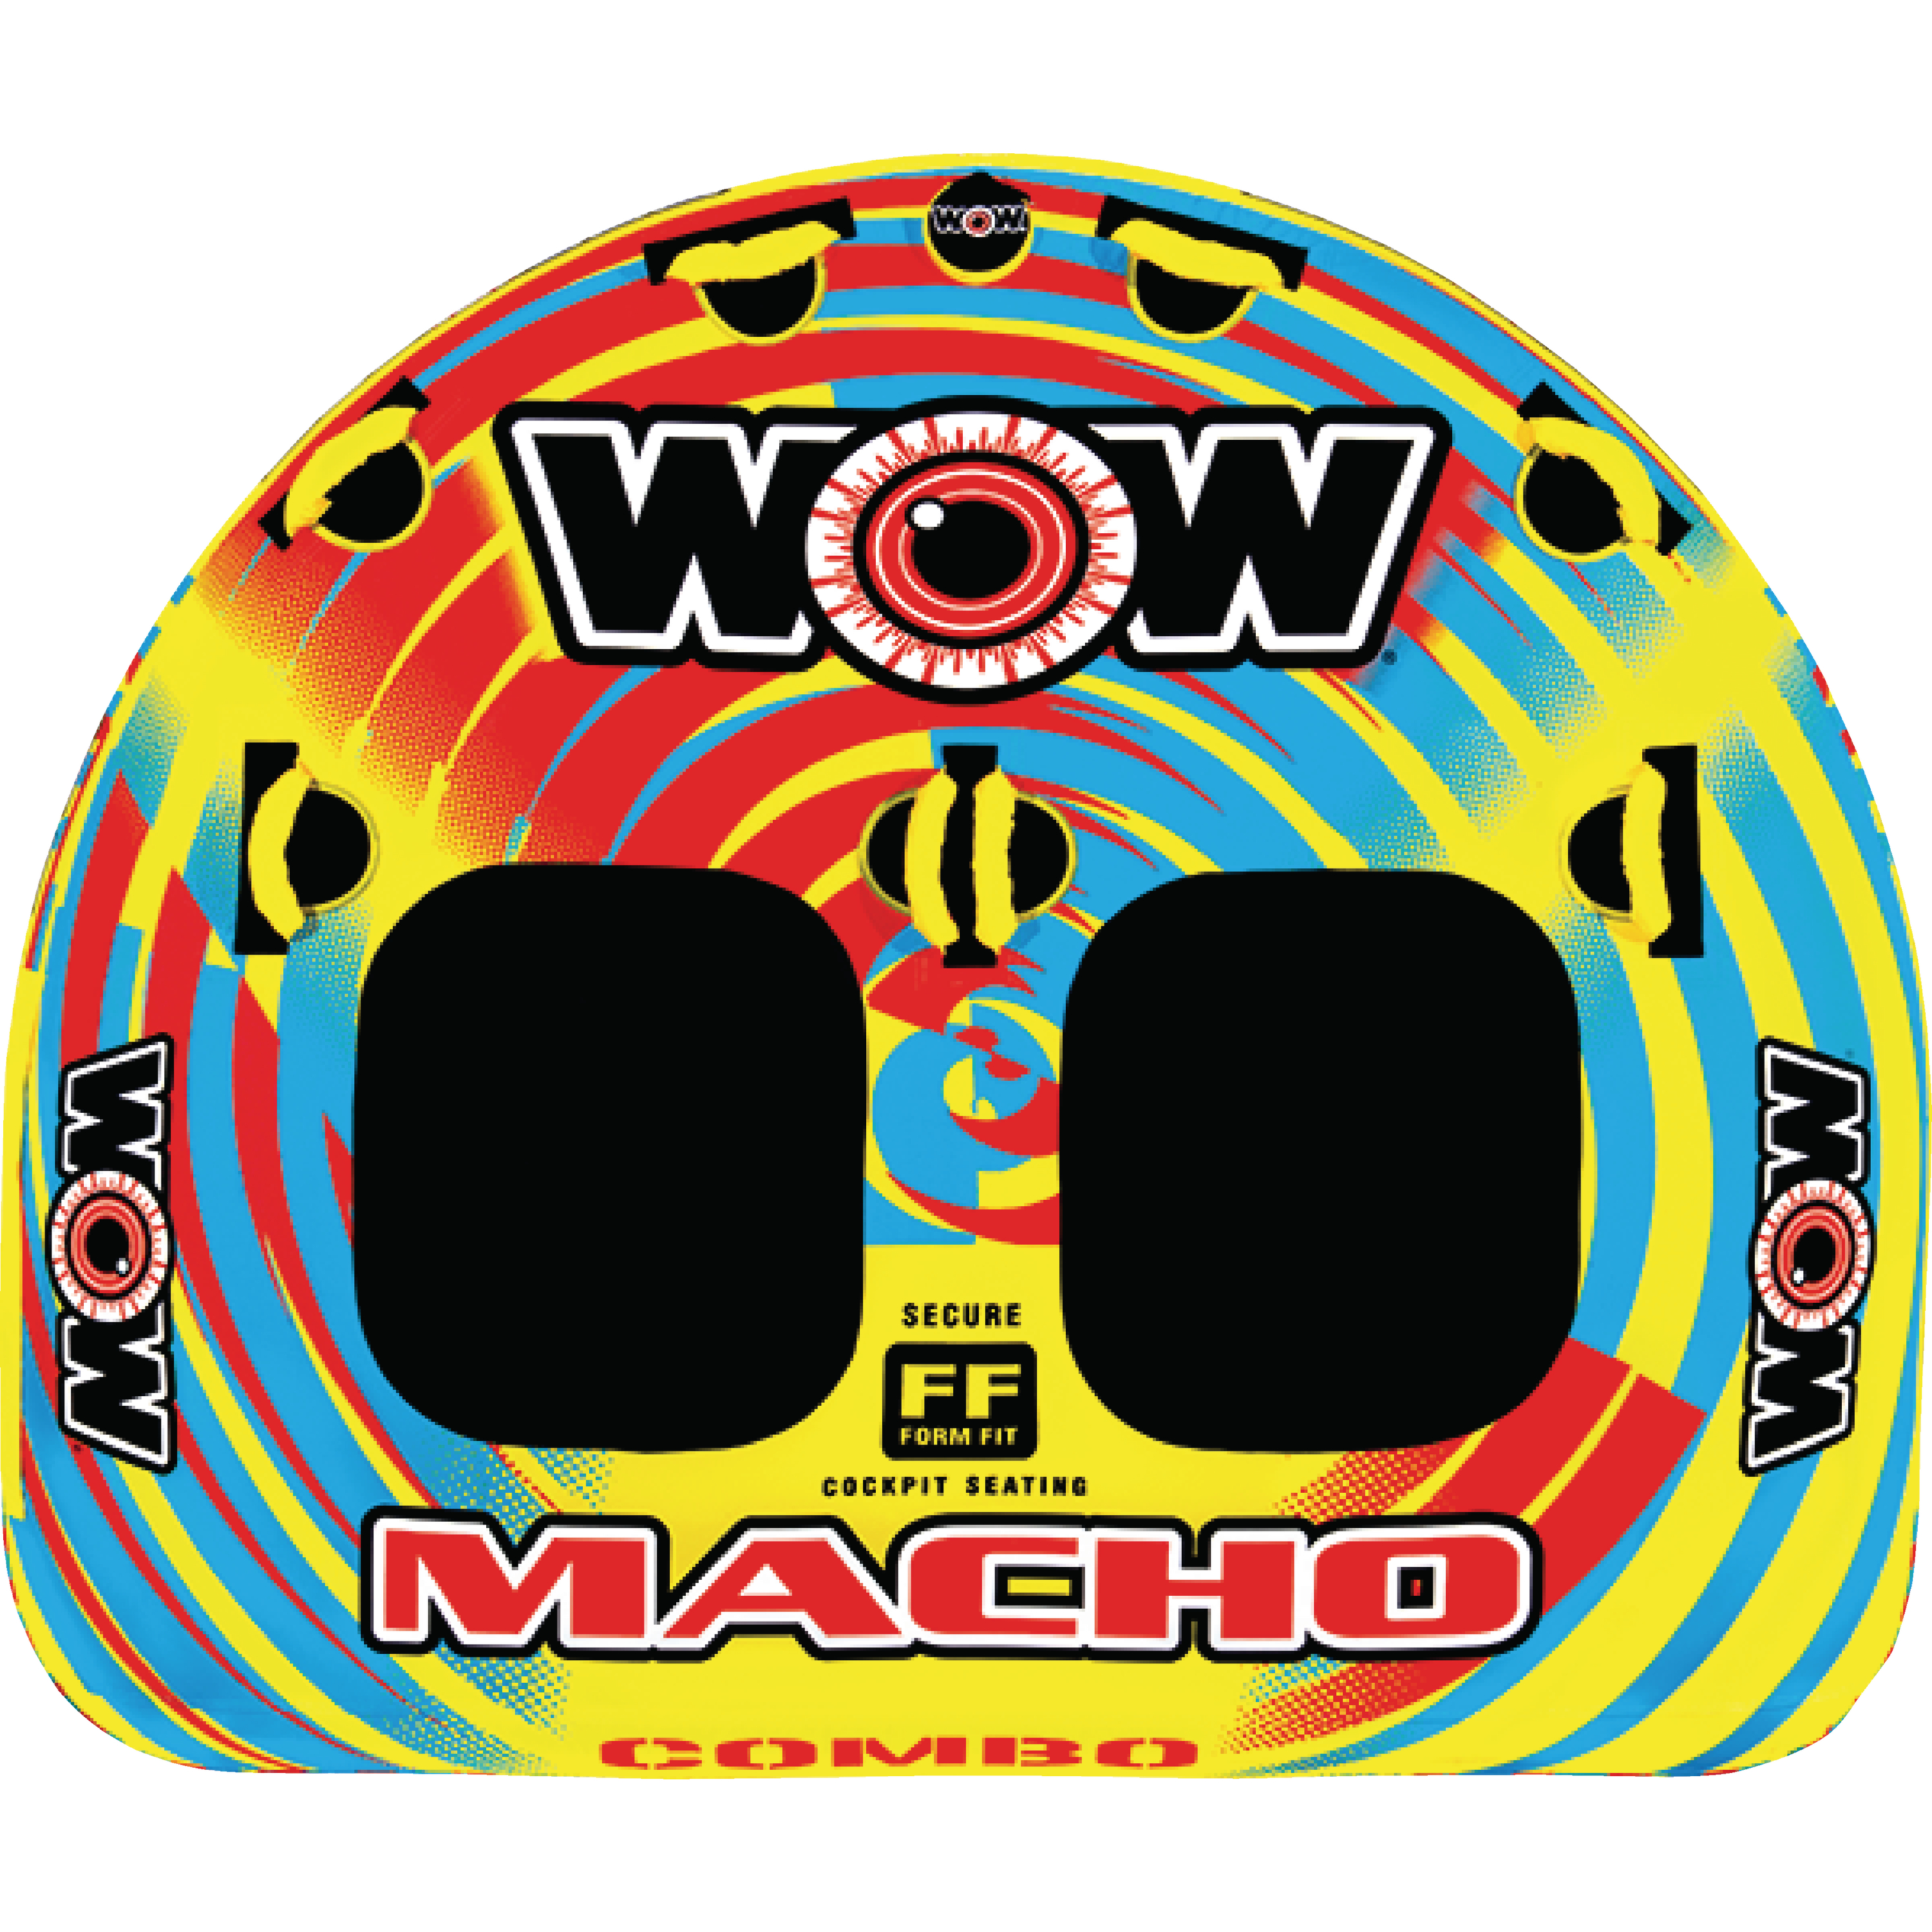 WOW 16-1010 Macho 1-2 Rider Inflatable Towable